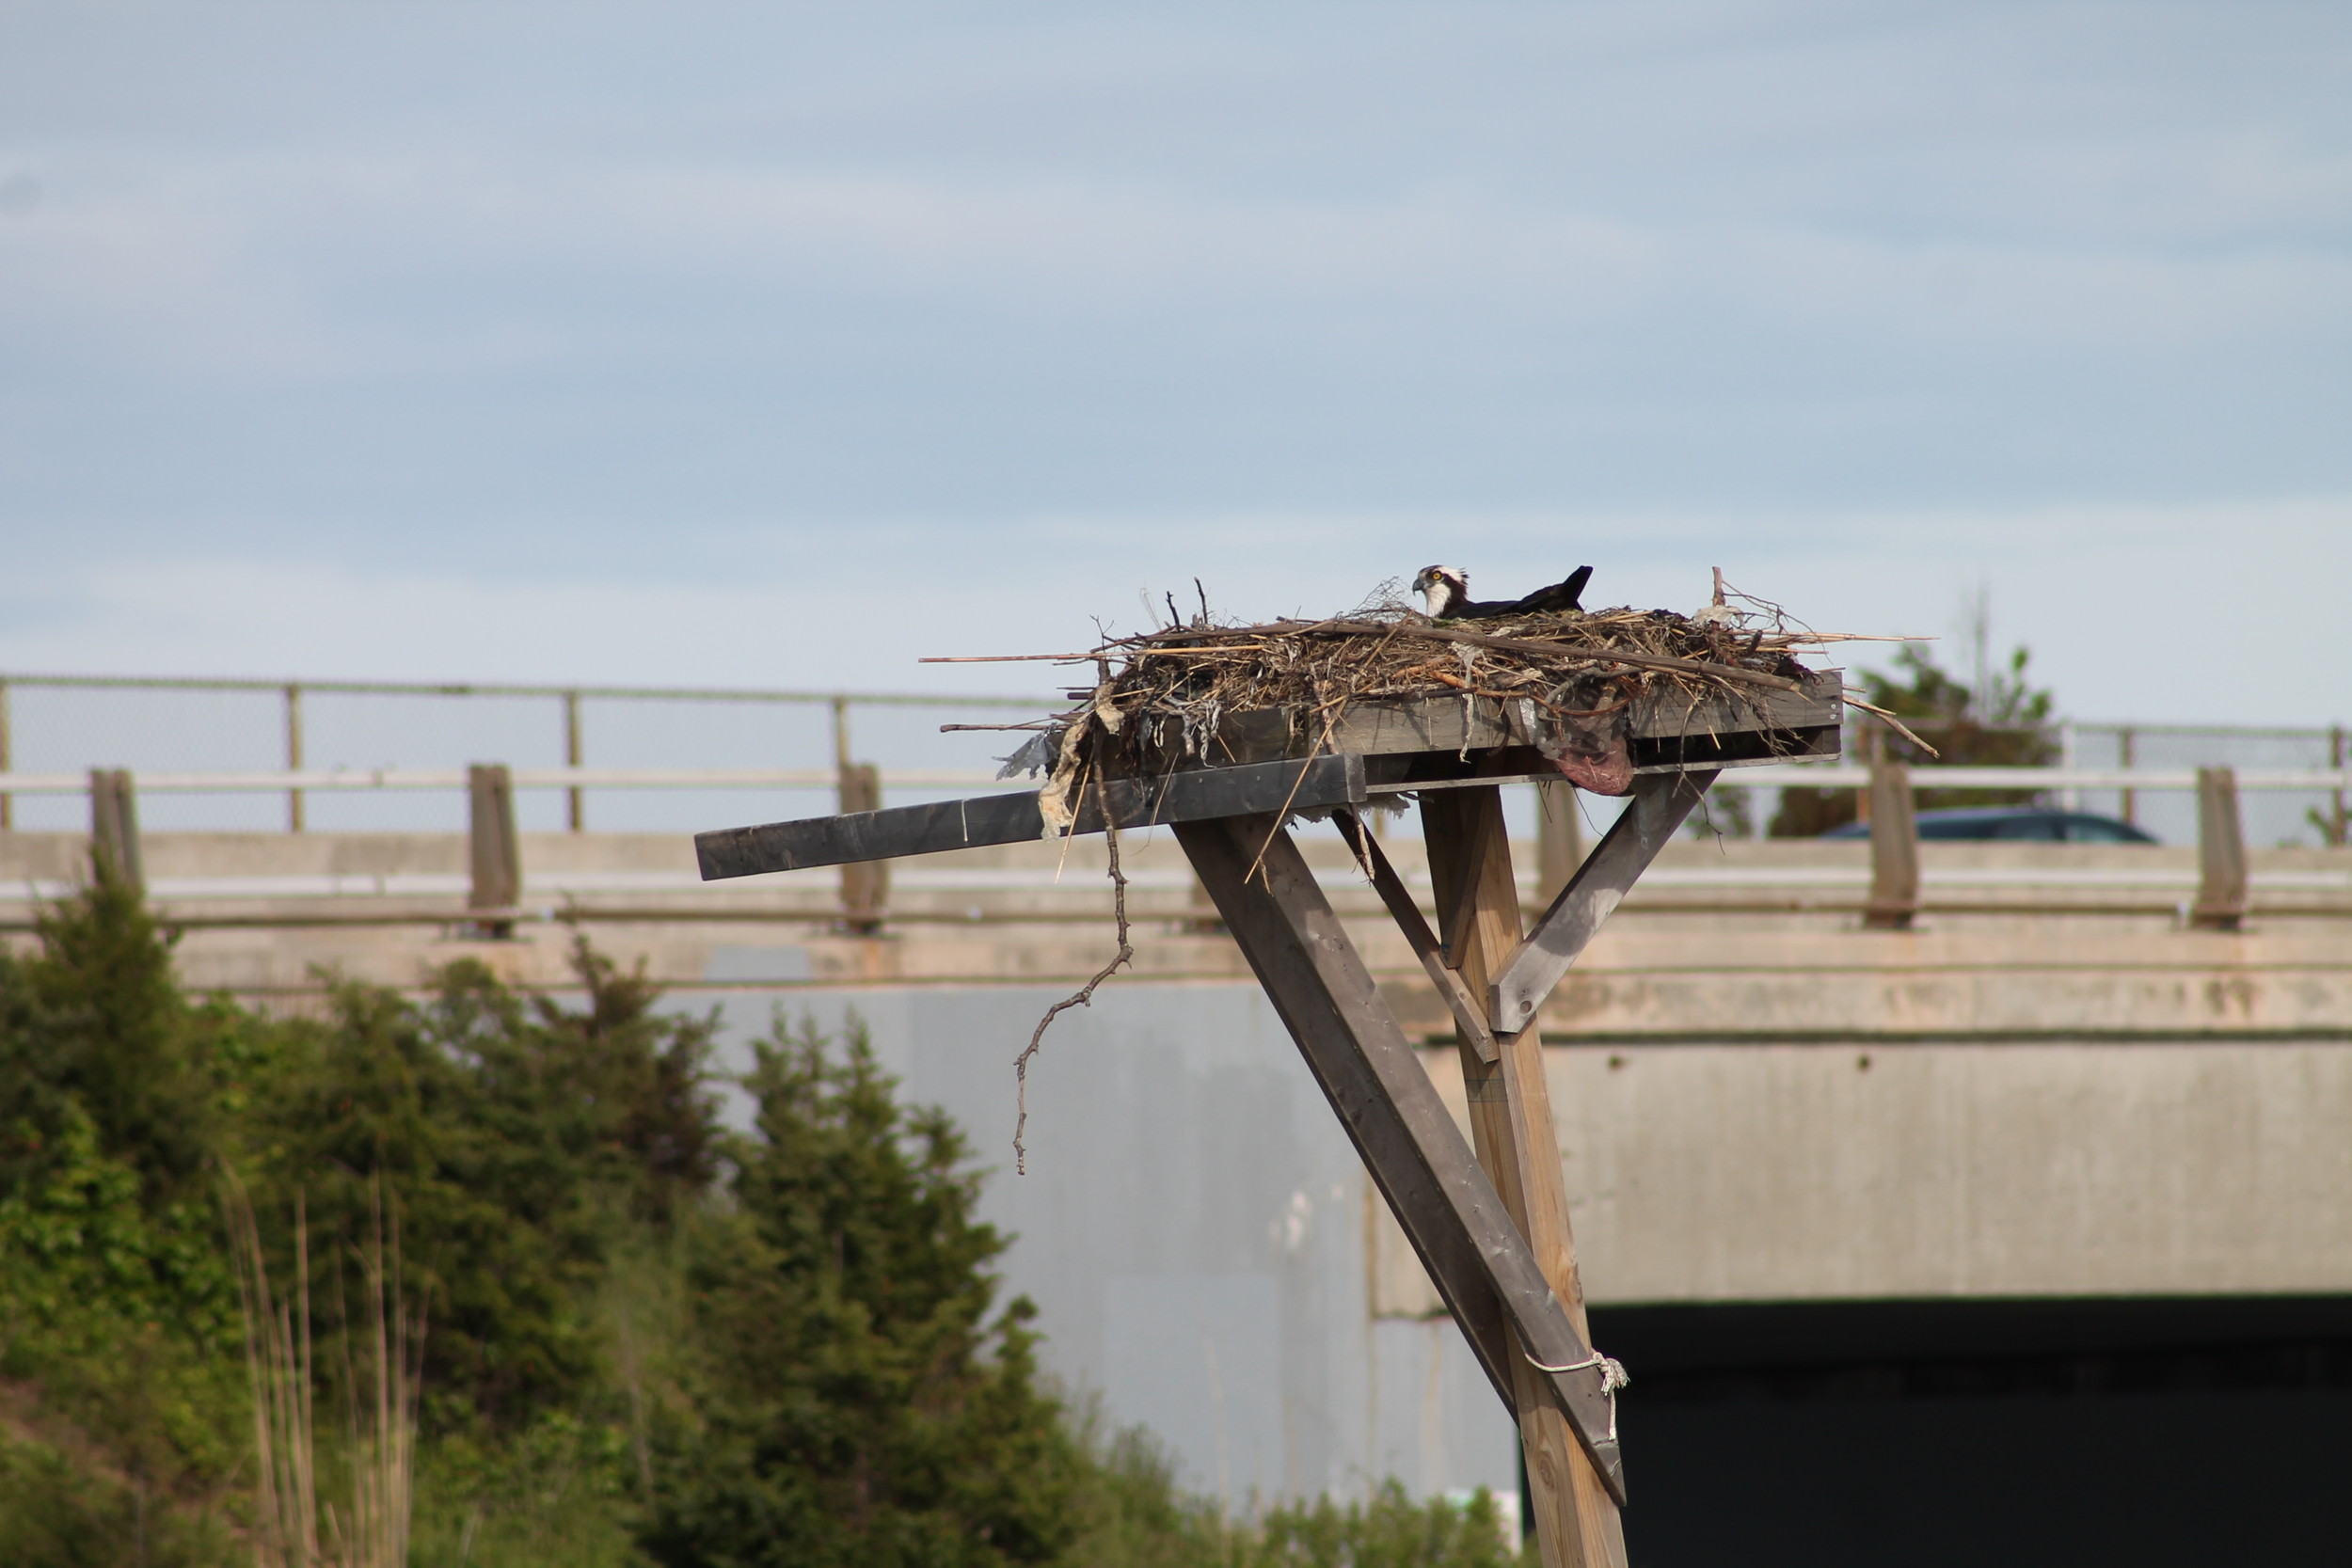 A mother osprey protected her eggs on a nesting platform in Wantagh Park.